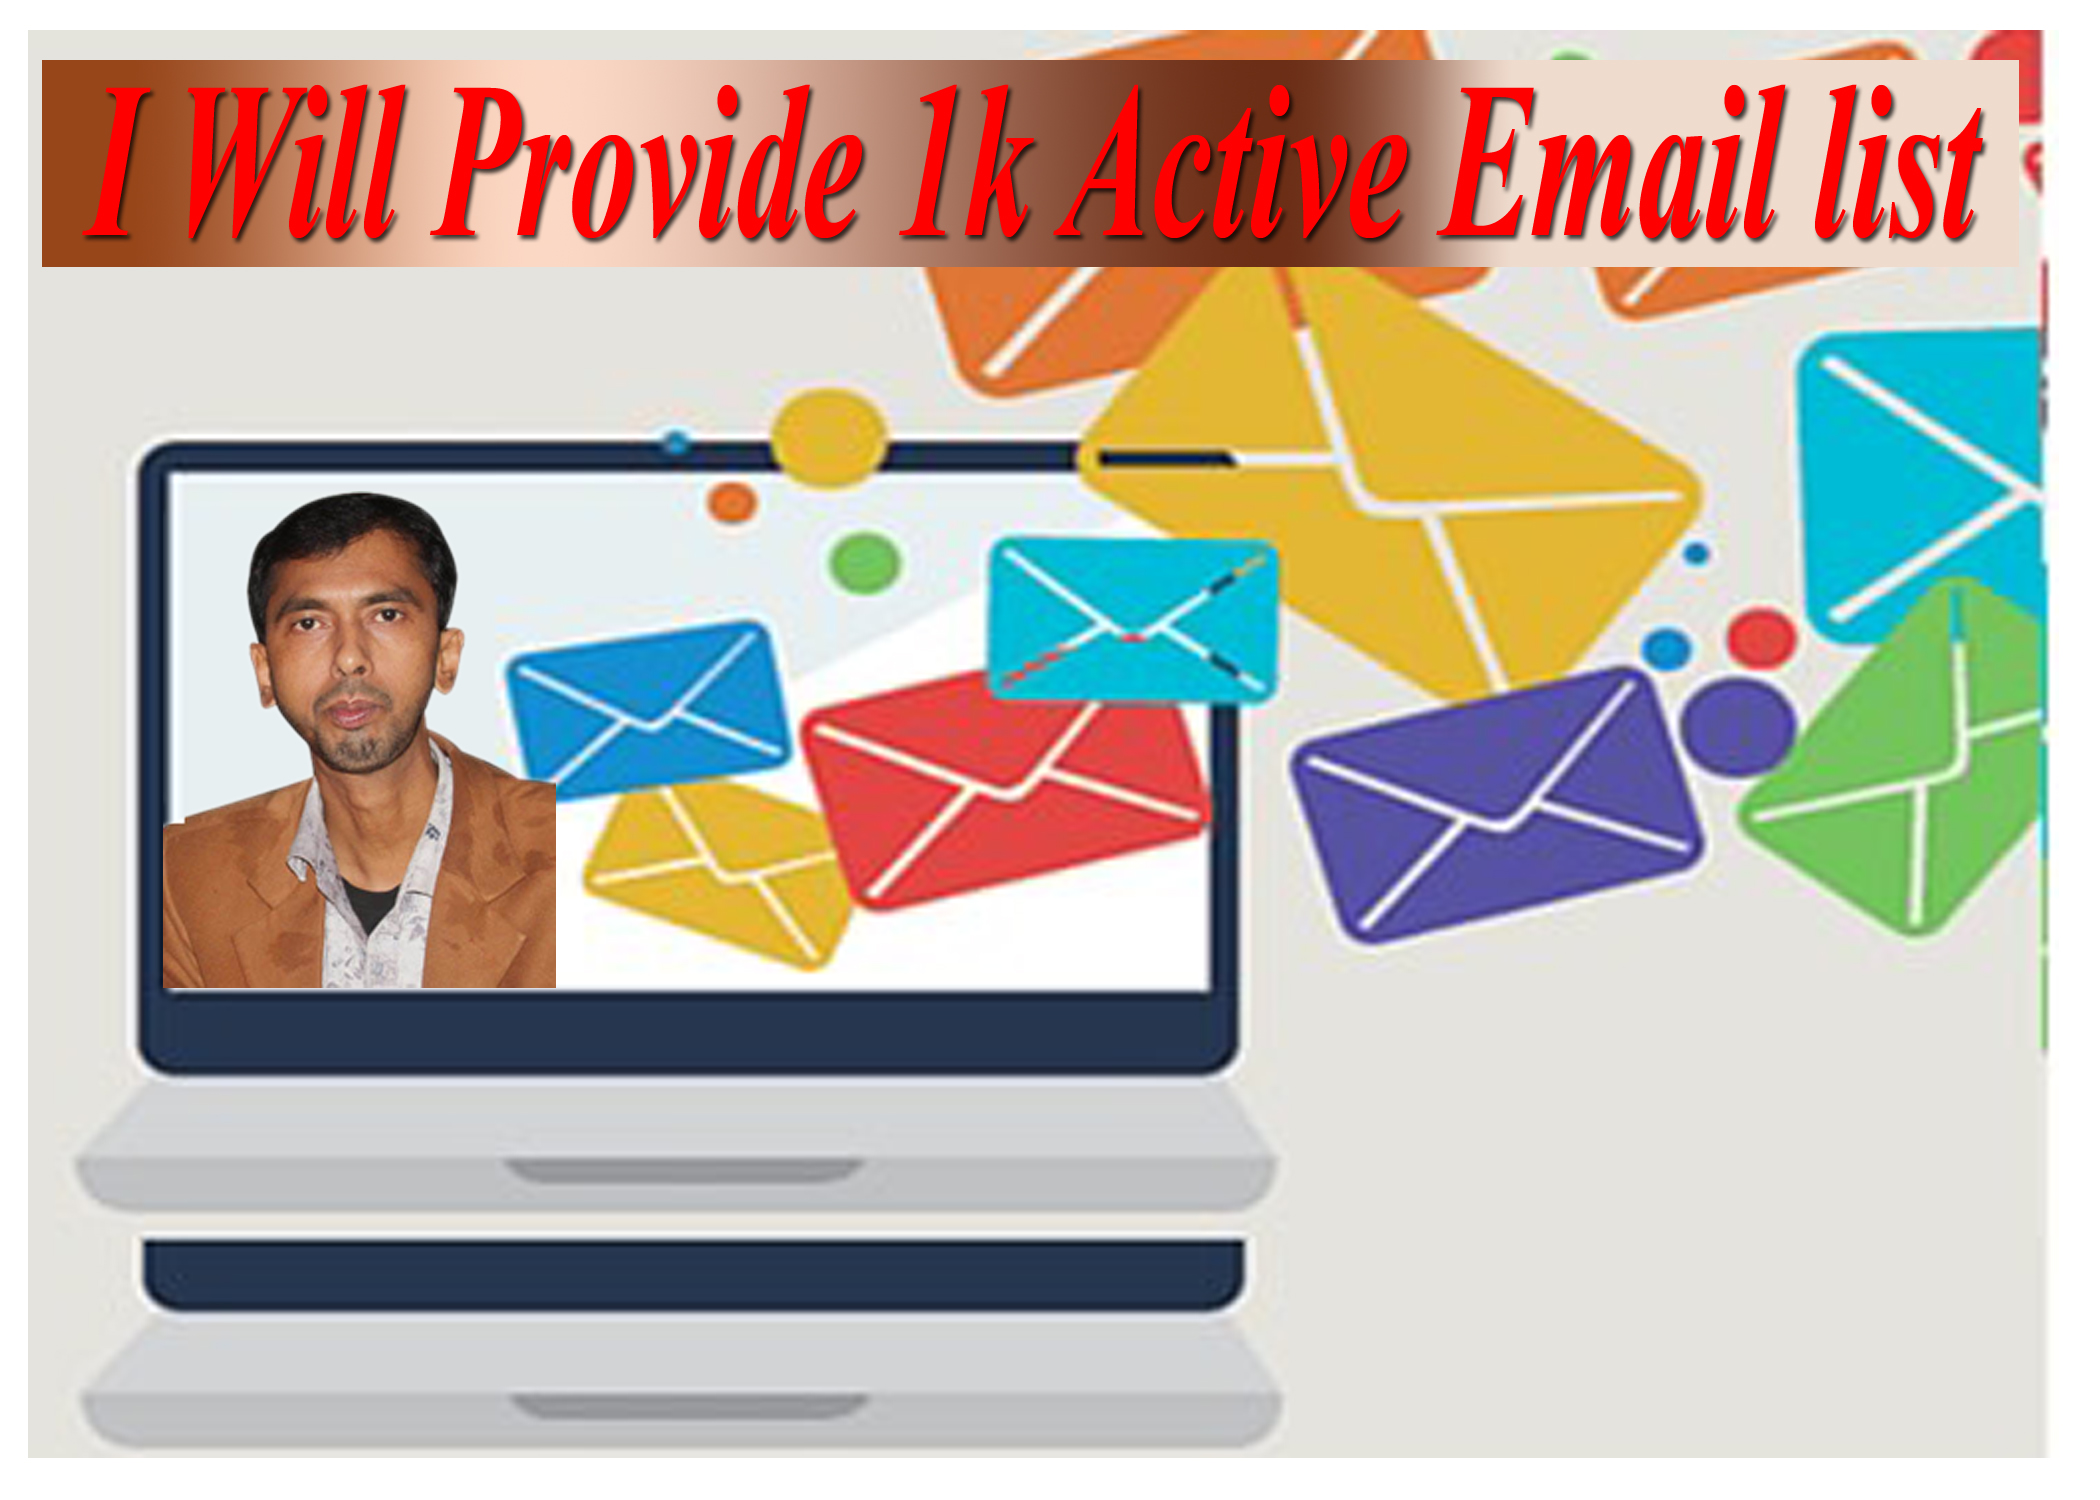 I will provide 1000+ active email list for your business